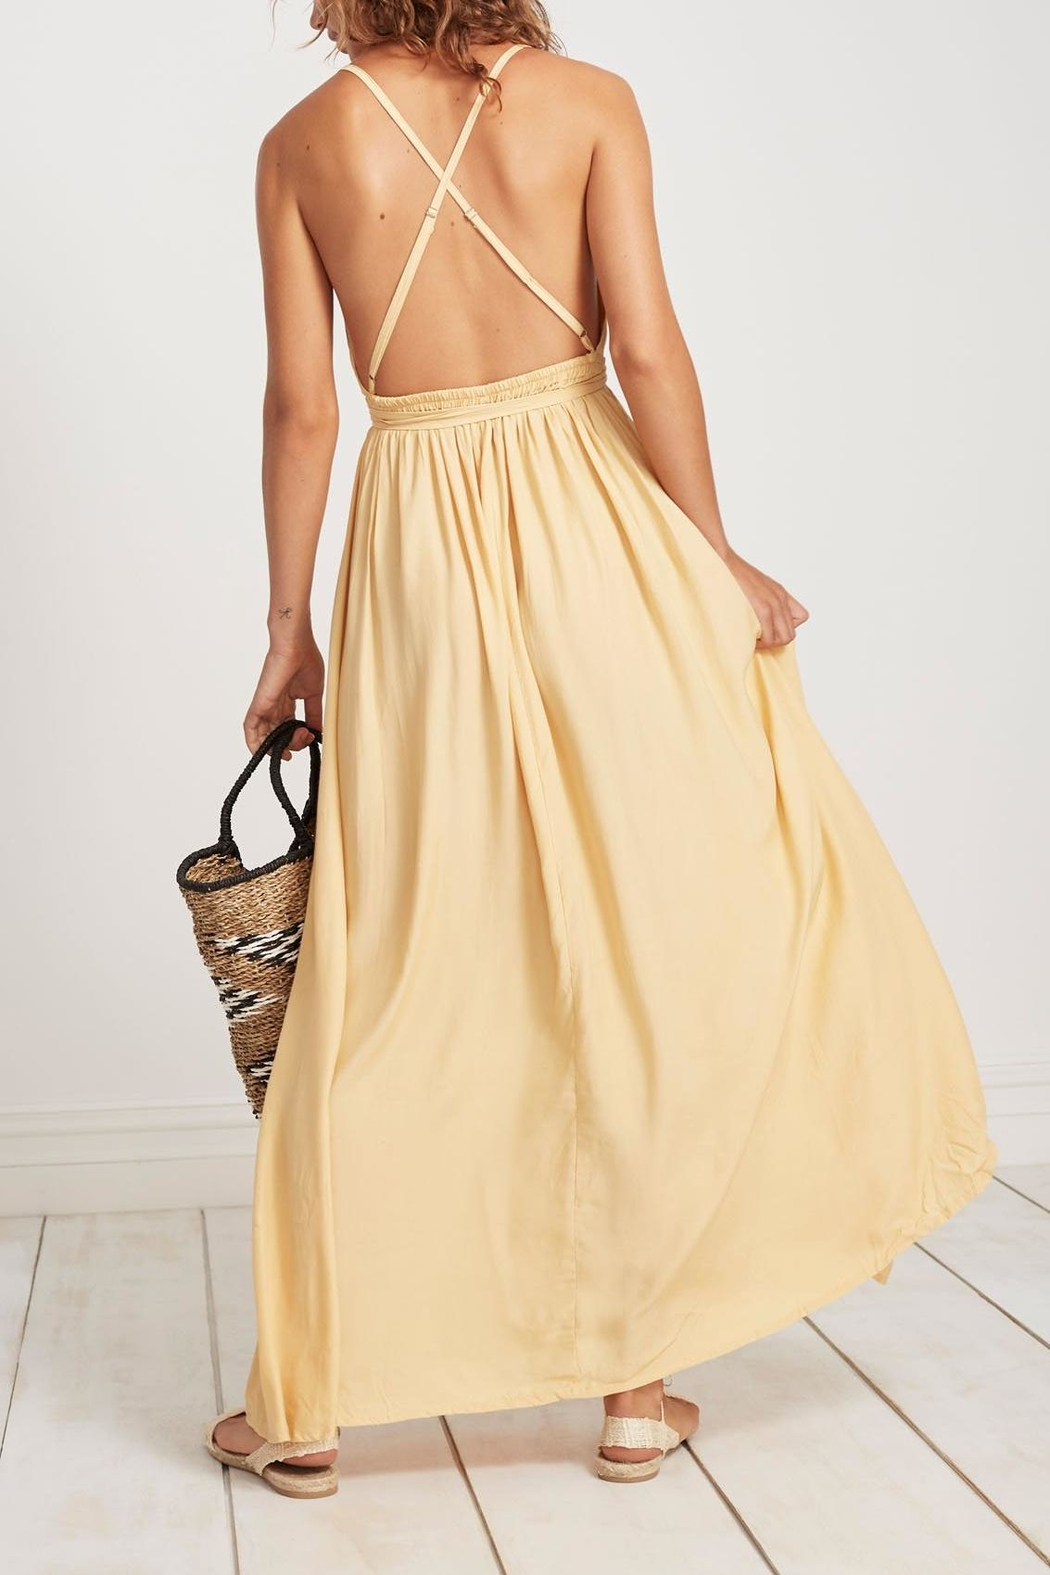 56a2681ed3 Faithfull The Brand Lemon Sorbet Maxi from Los Angeles by Tags ...